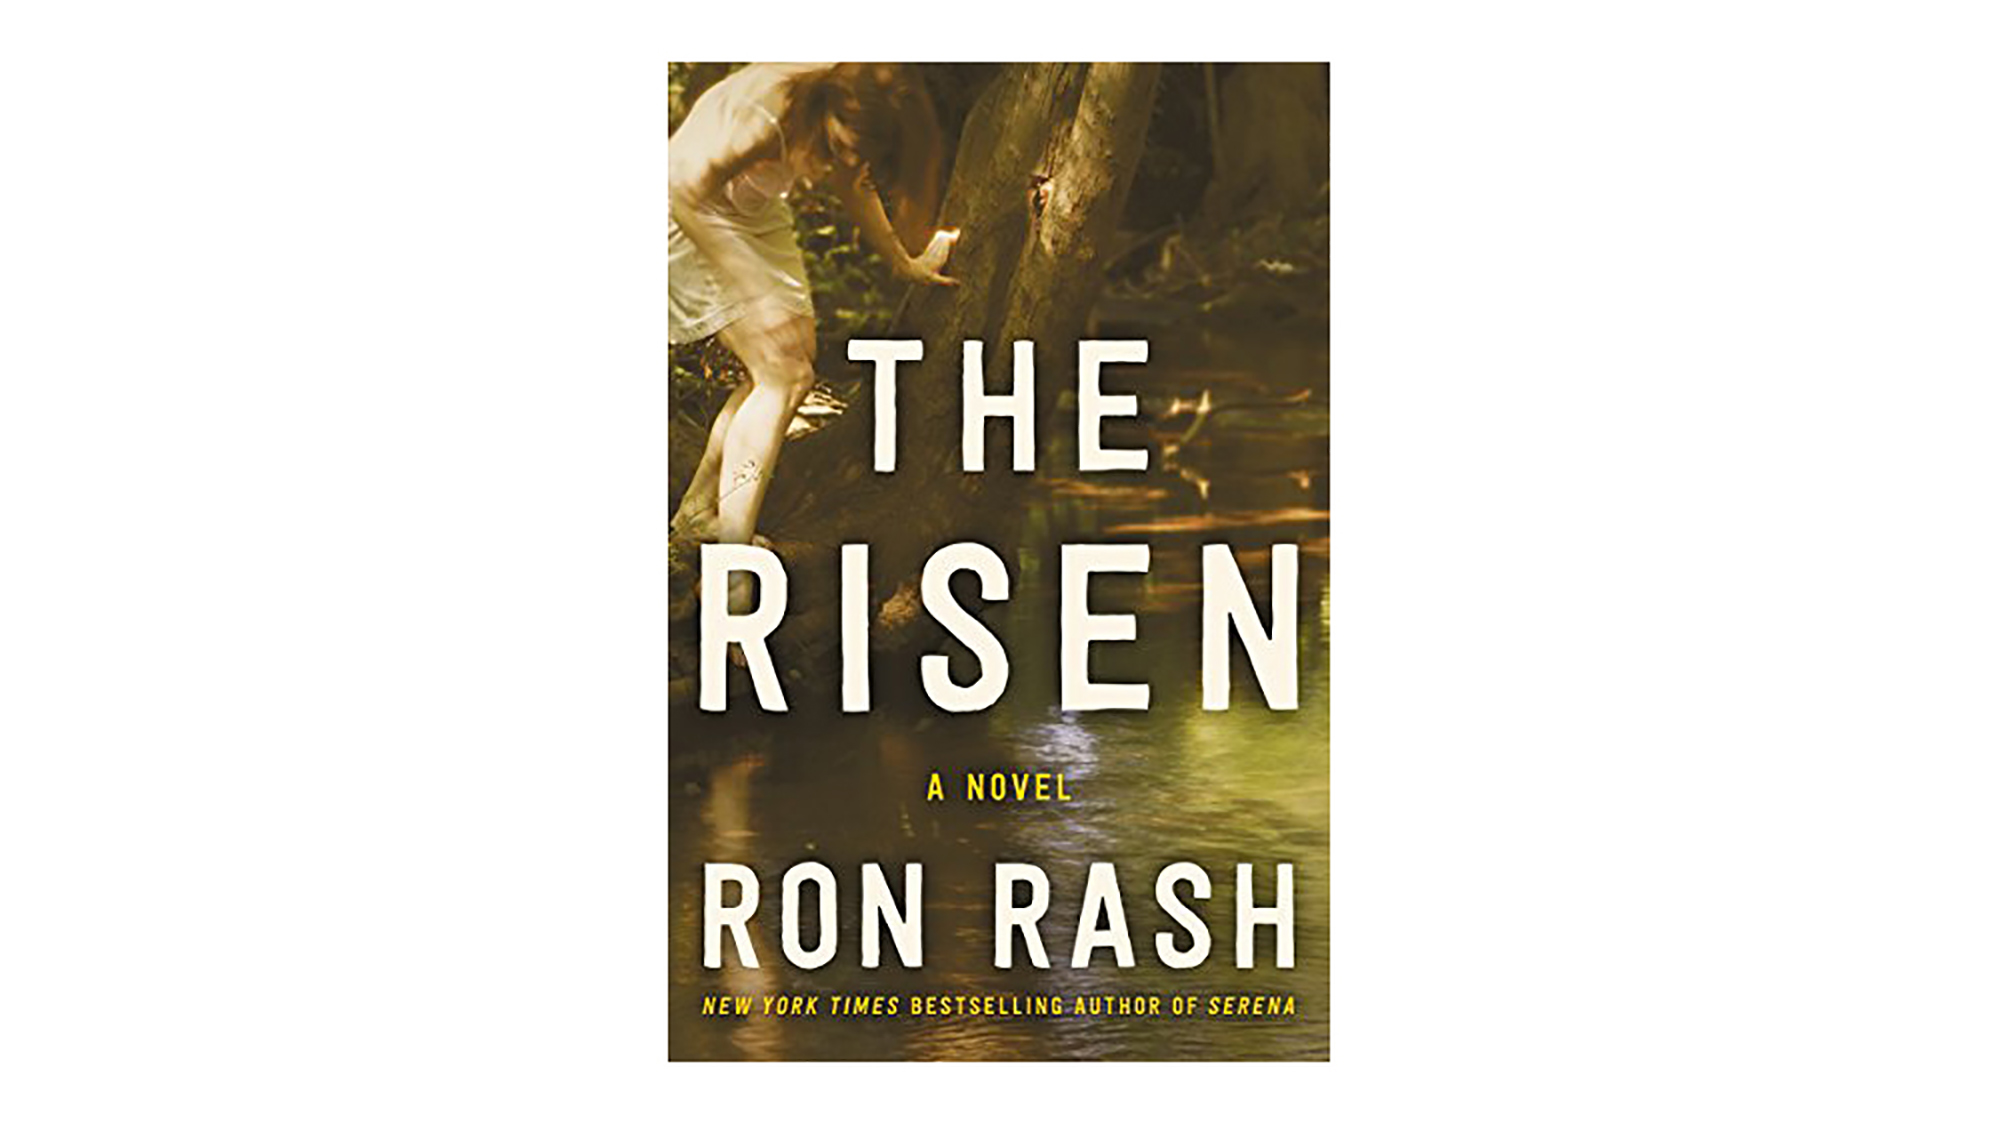 The Risen by Ron Rash